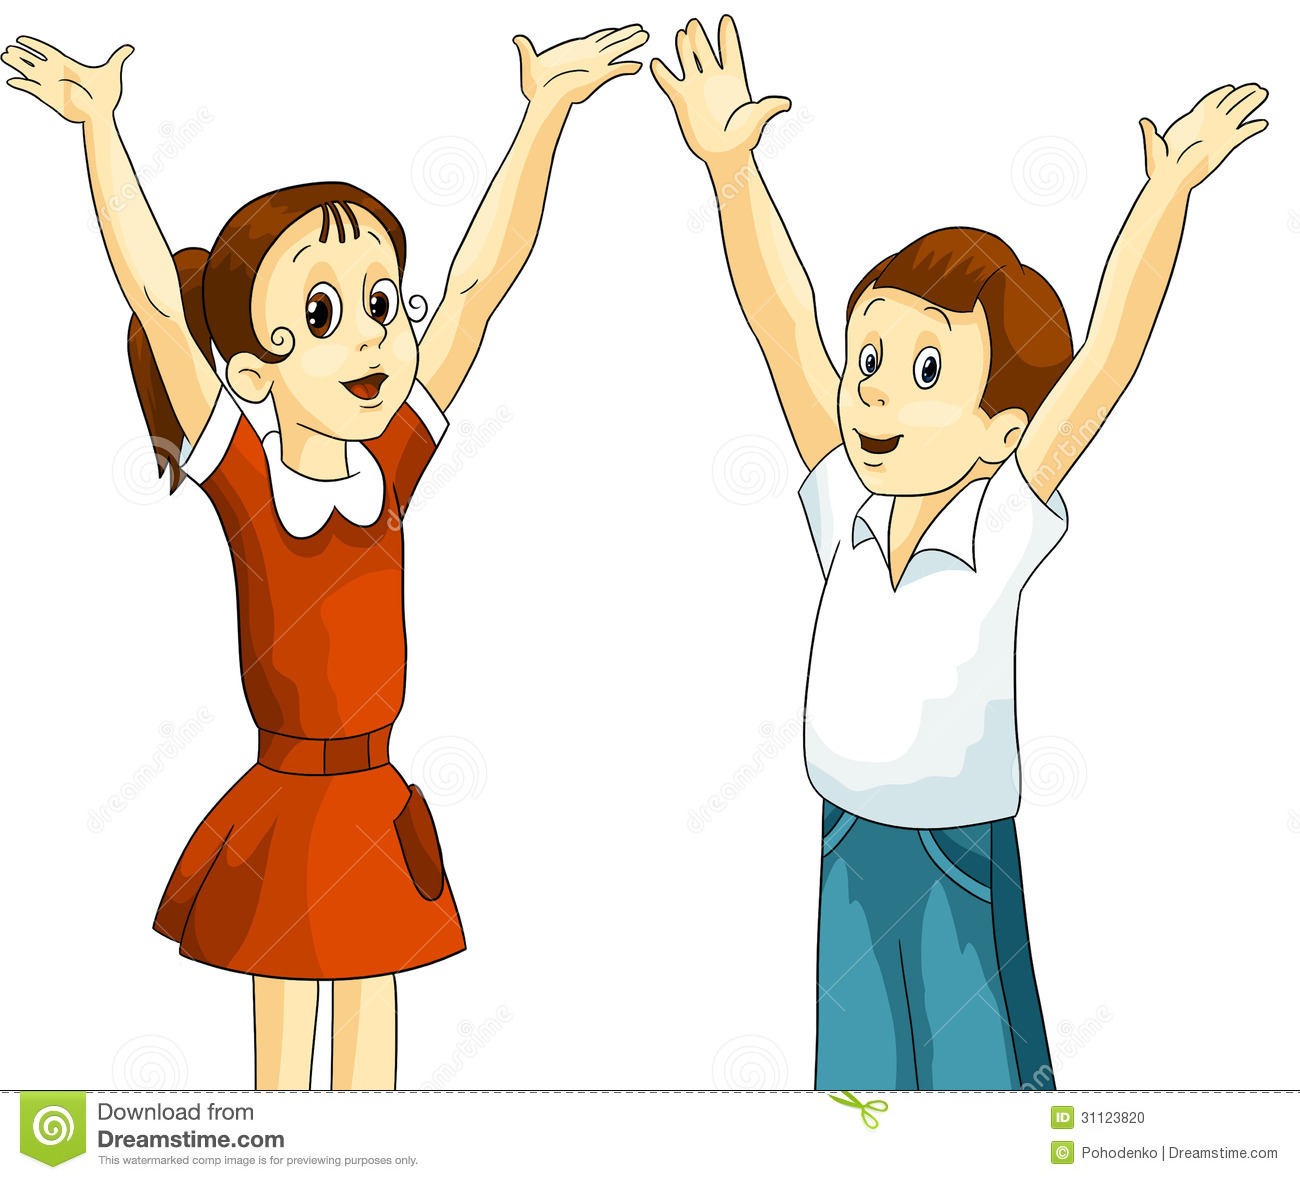 Girl boy children clipart .-Girl boy children clipart .-12